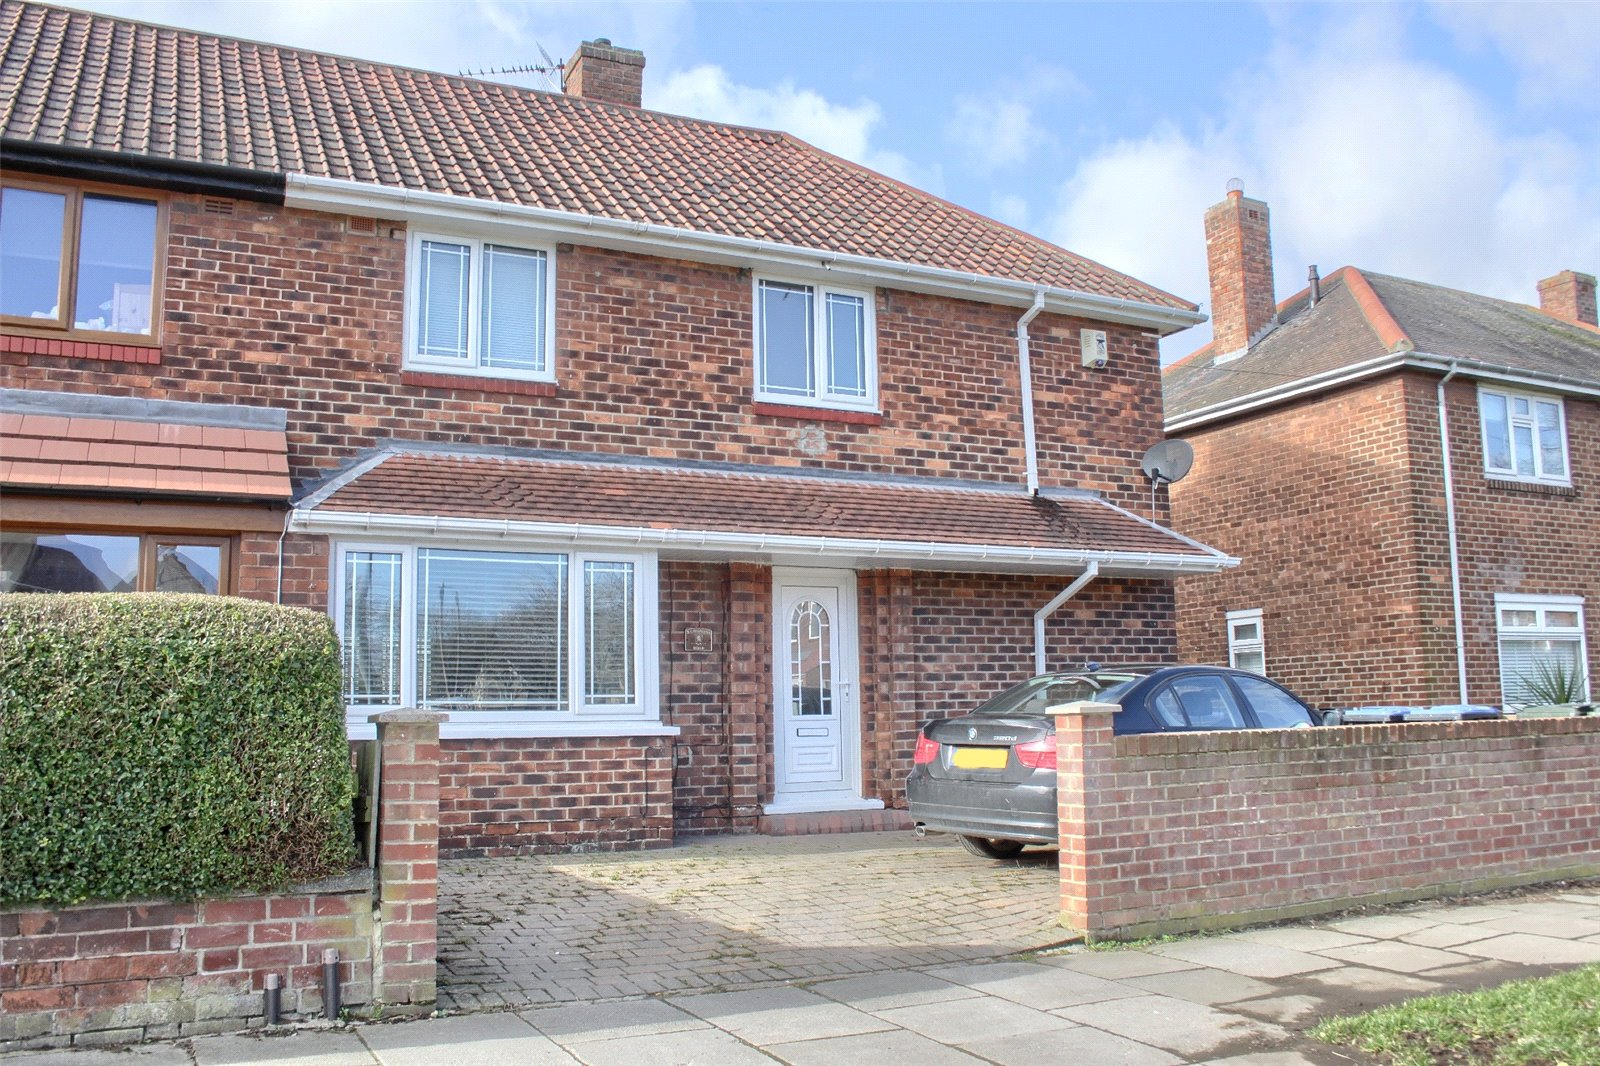 3 bed house for sale in Cavendish Road, Beechwood  - Property Image 1